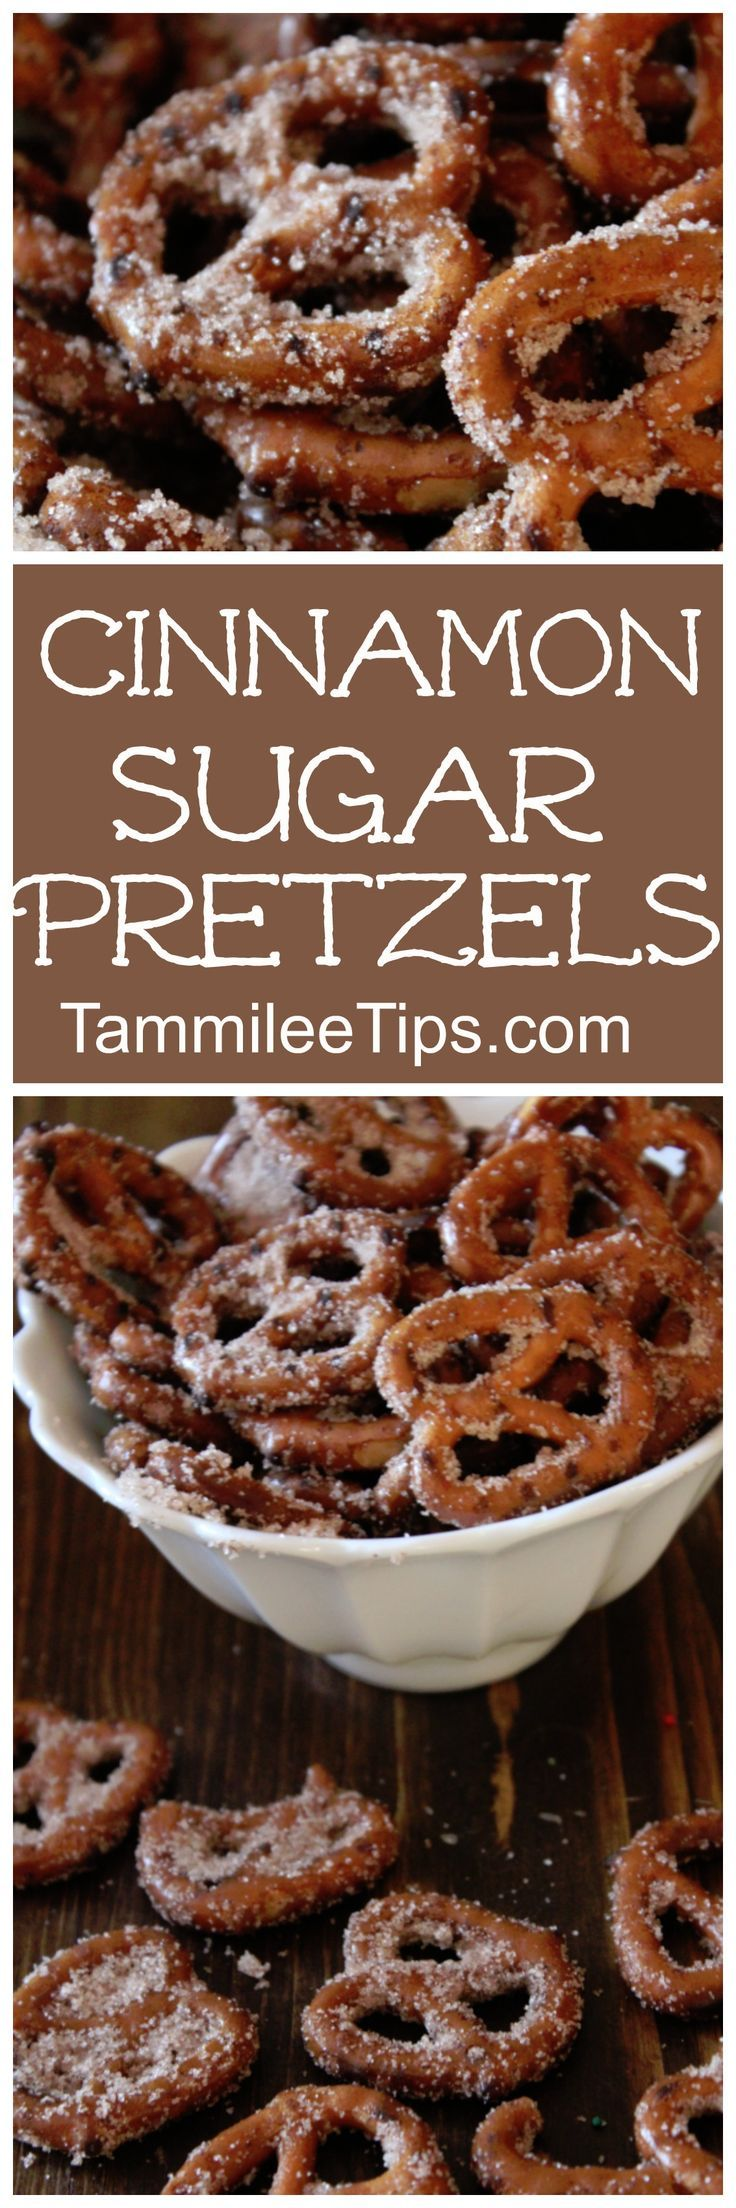 Super easy Cinnamon Sugar Pretzels! Perfect for DIY Homemade holiday gifts! This sweet dessert recipe is a family favorite!